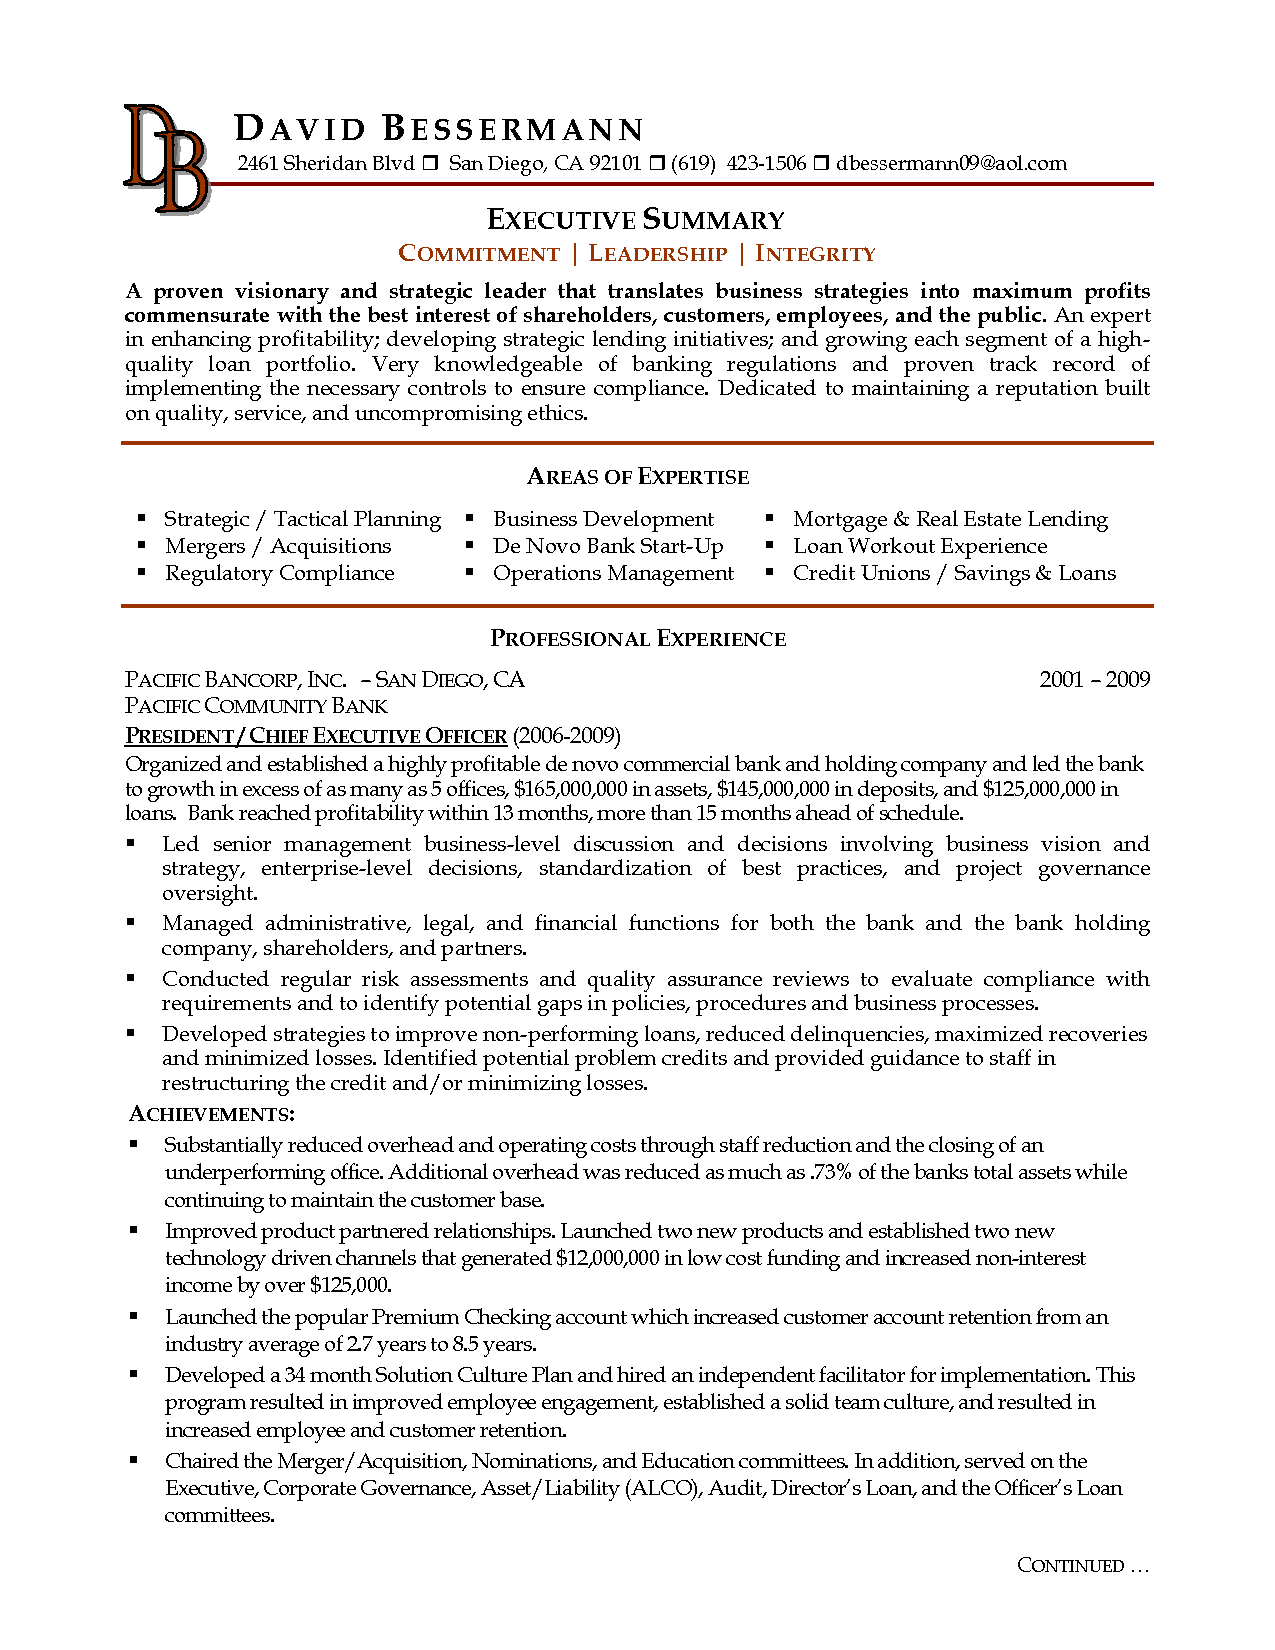 Example Resume Summary Resume Summary Examples Template Example For Students Professional